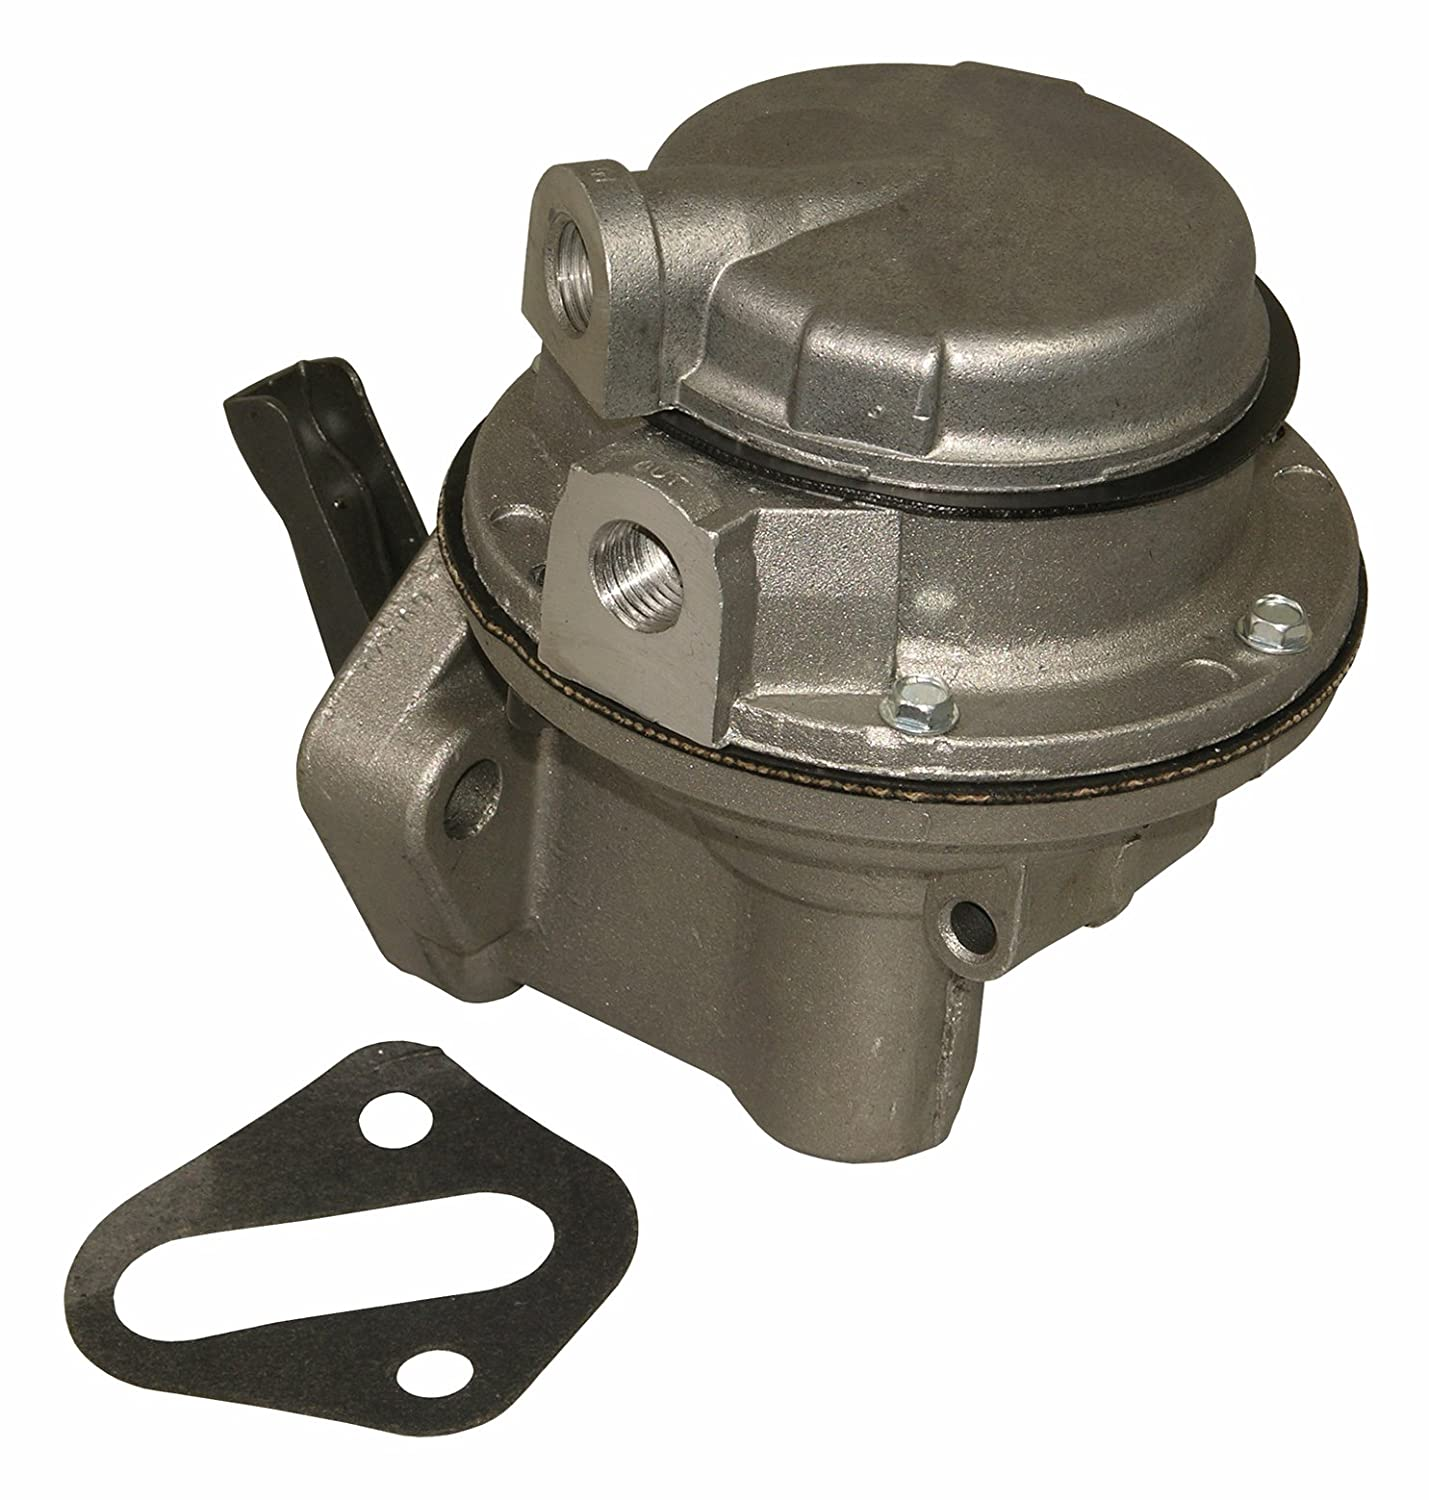 Airtex 60600 Mechanical Fuel Pump for Mercury Marine and Panther Marine 8 Cylinder